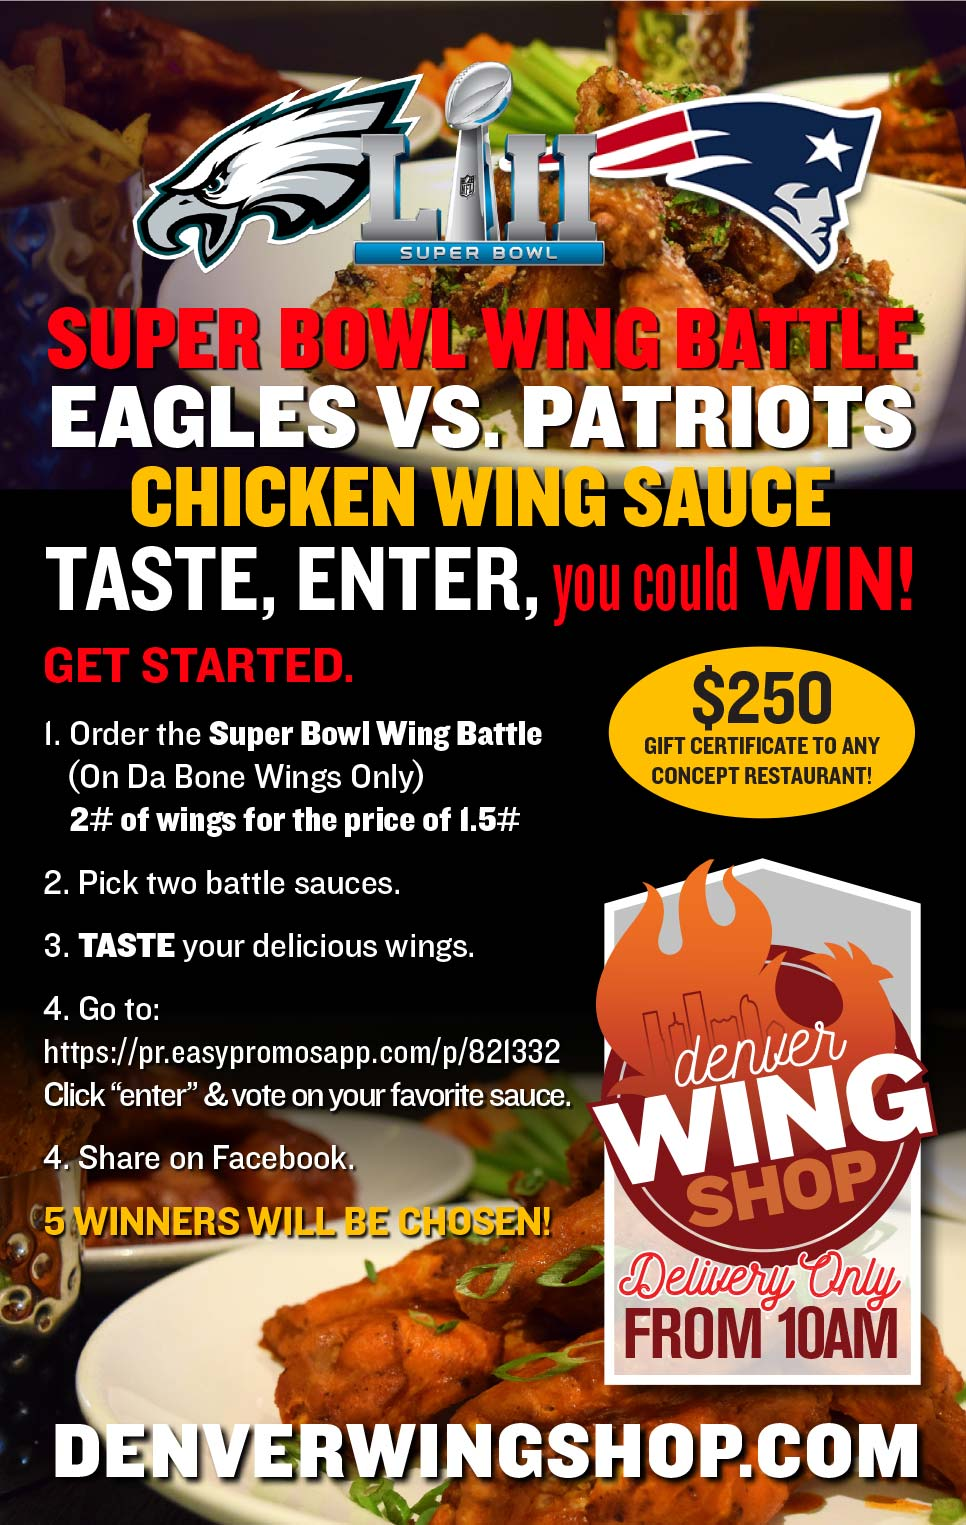 Super Bowl Wing Battle